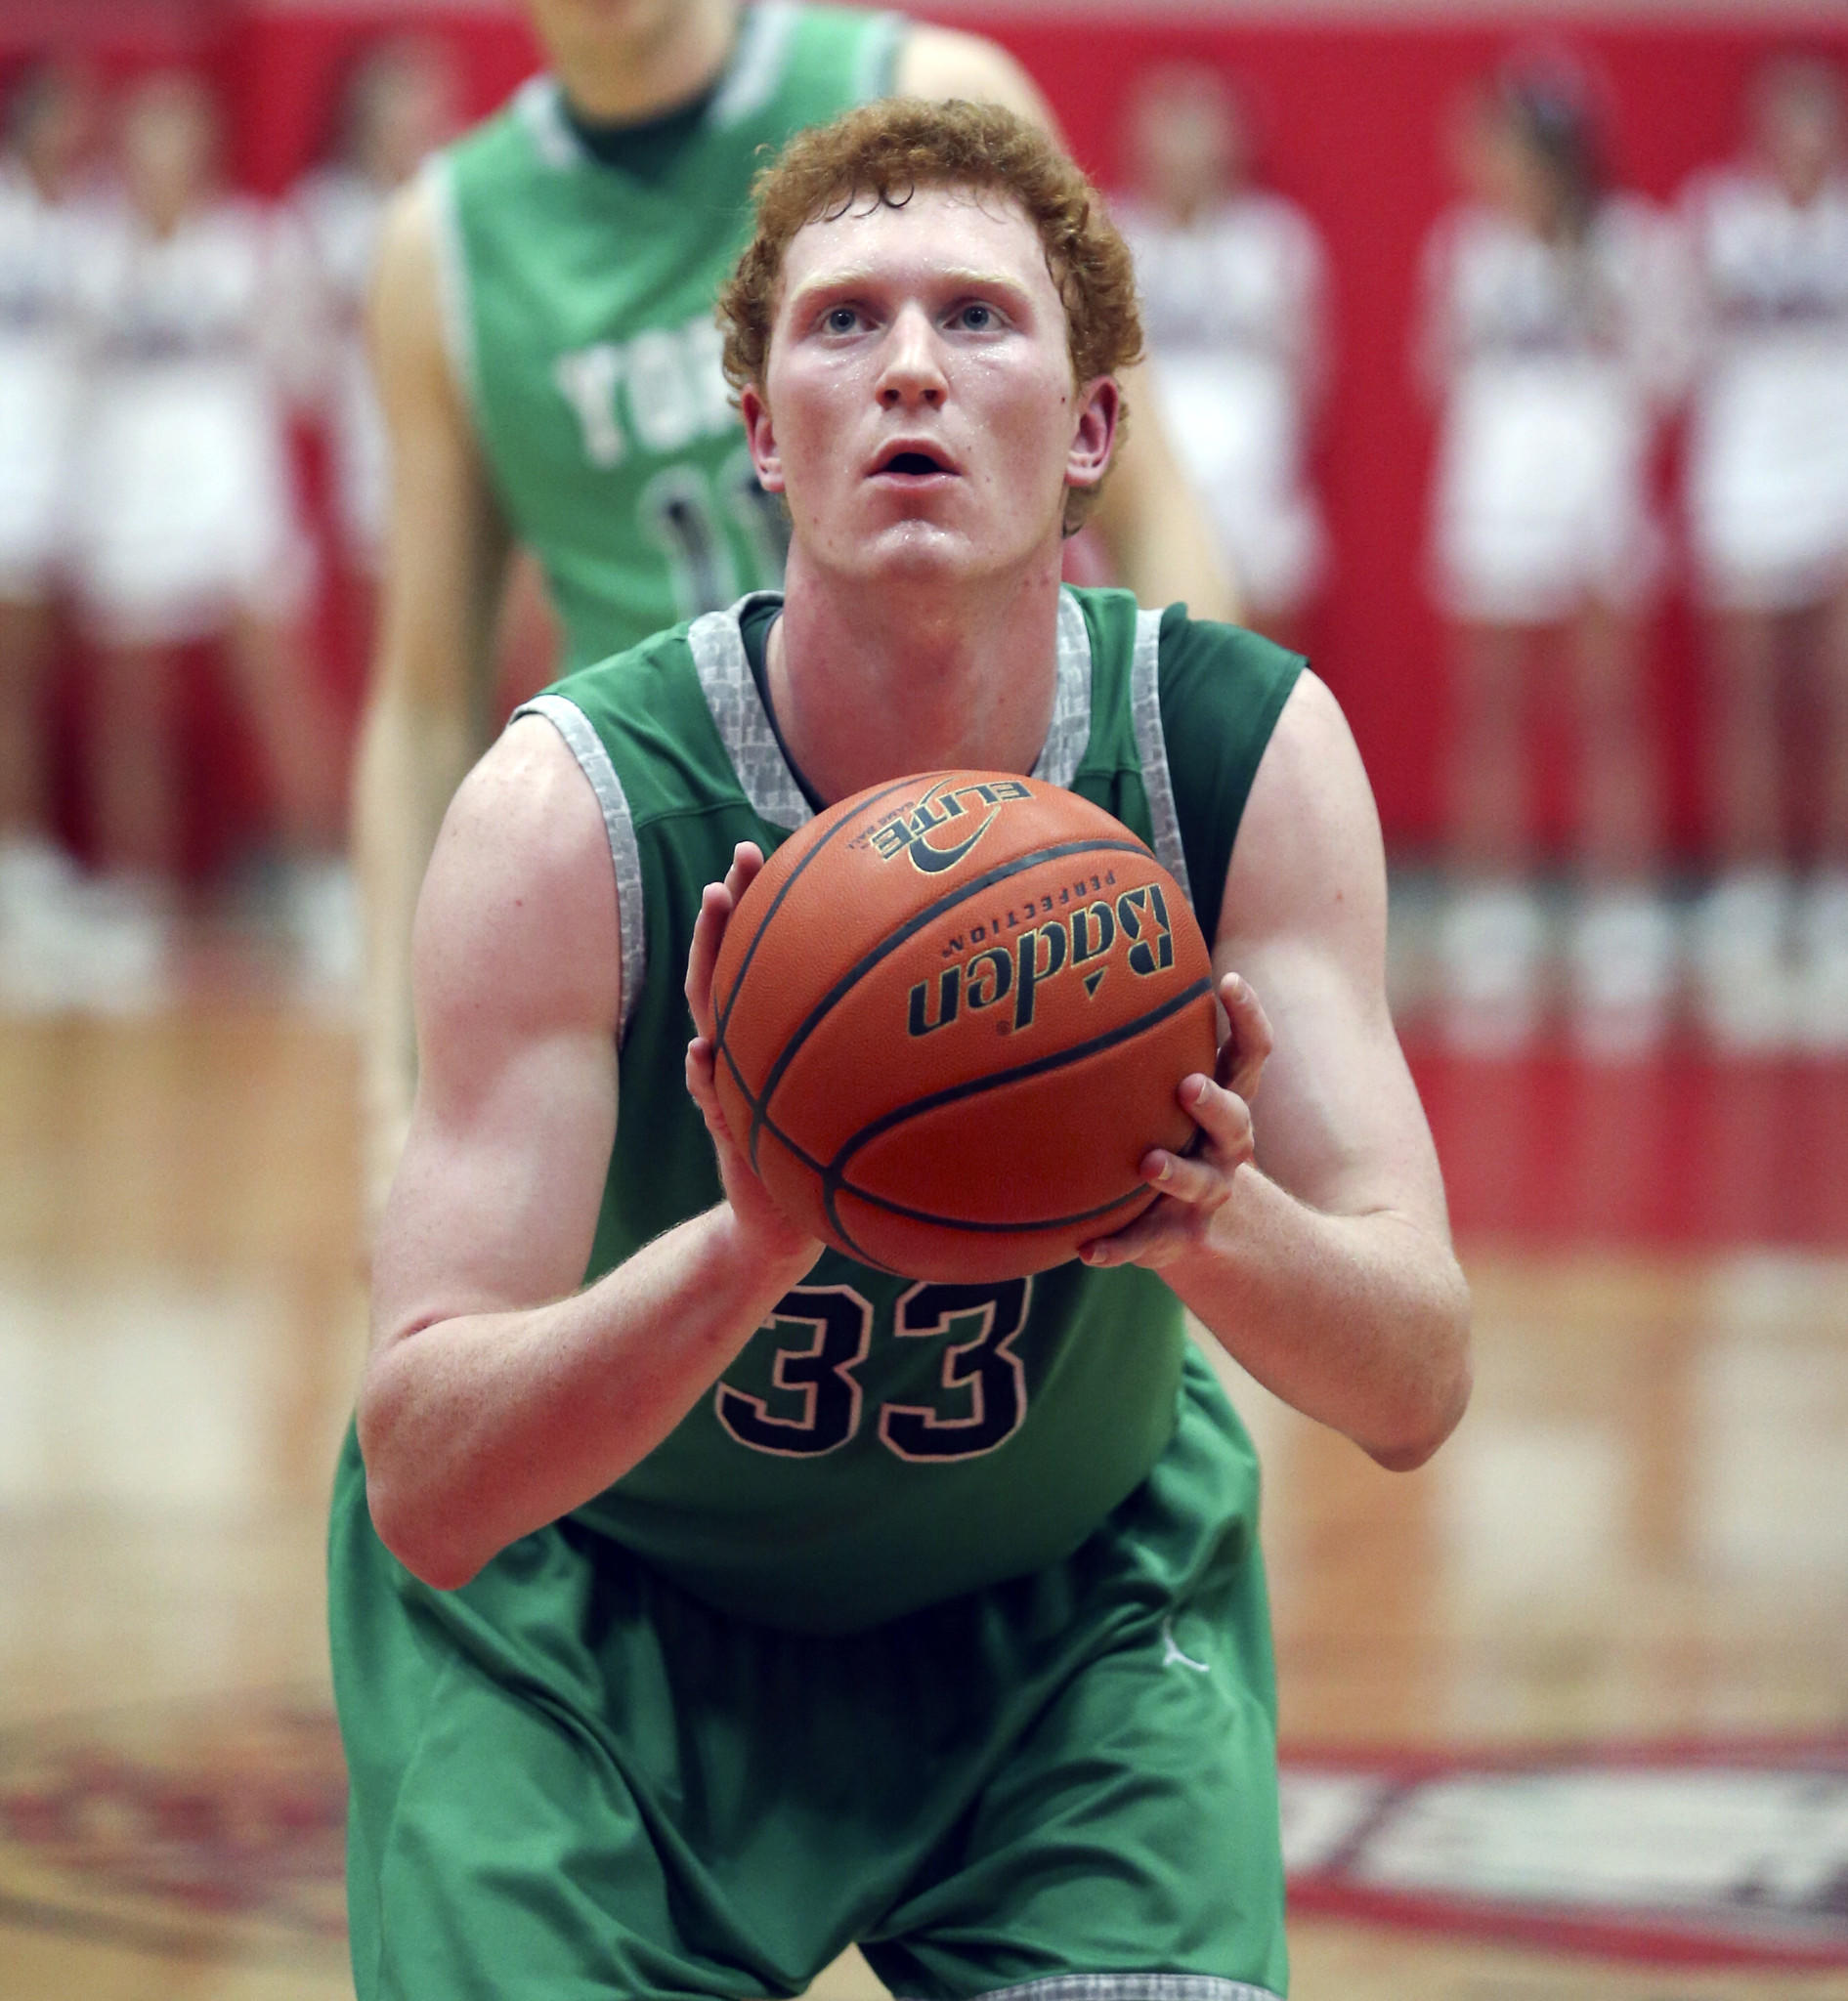 York #33 Frank Toohey lines up a free throw against Hinsdale Central on Tuesday, Feb. 18, 2014.